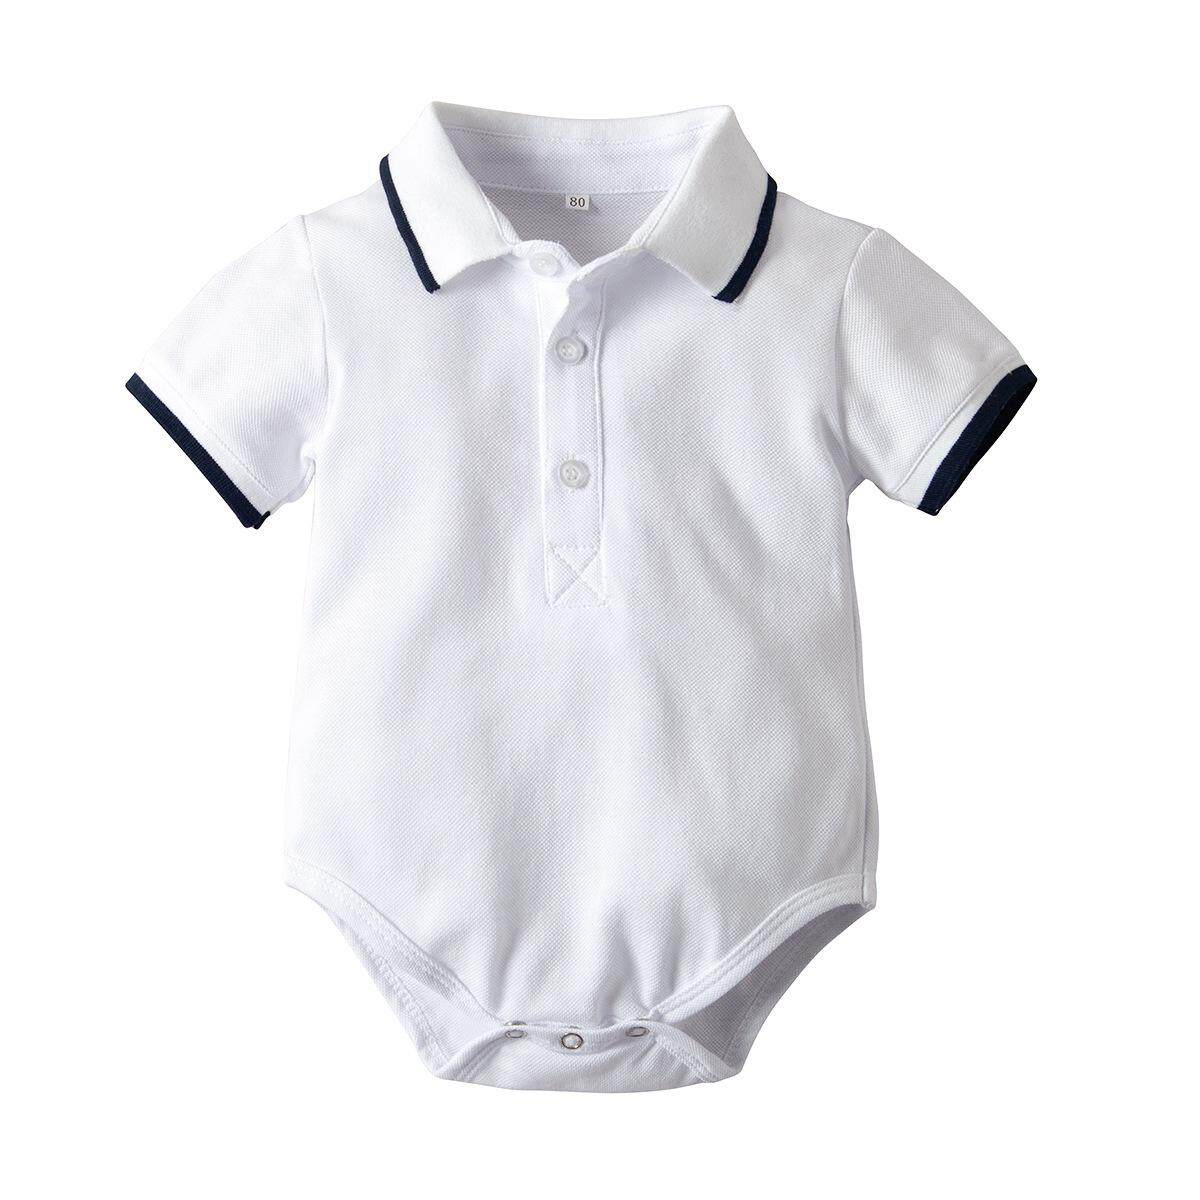 ab5ac9abe Summer newborn baby boys clothes Cotton Fashion letter printing baby boy  polo T shirt for 0